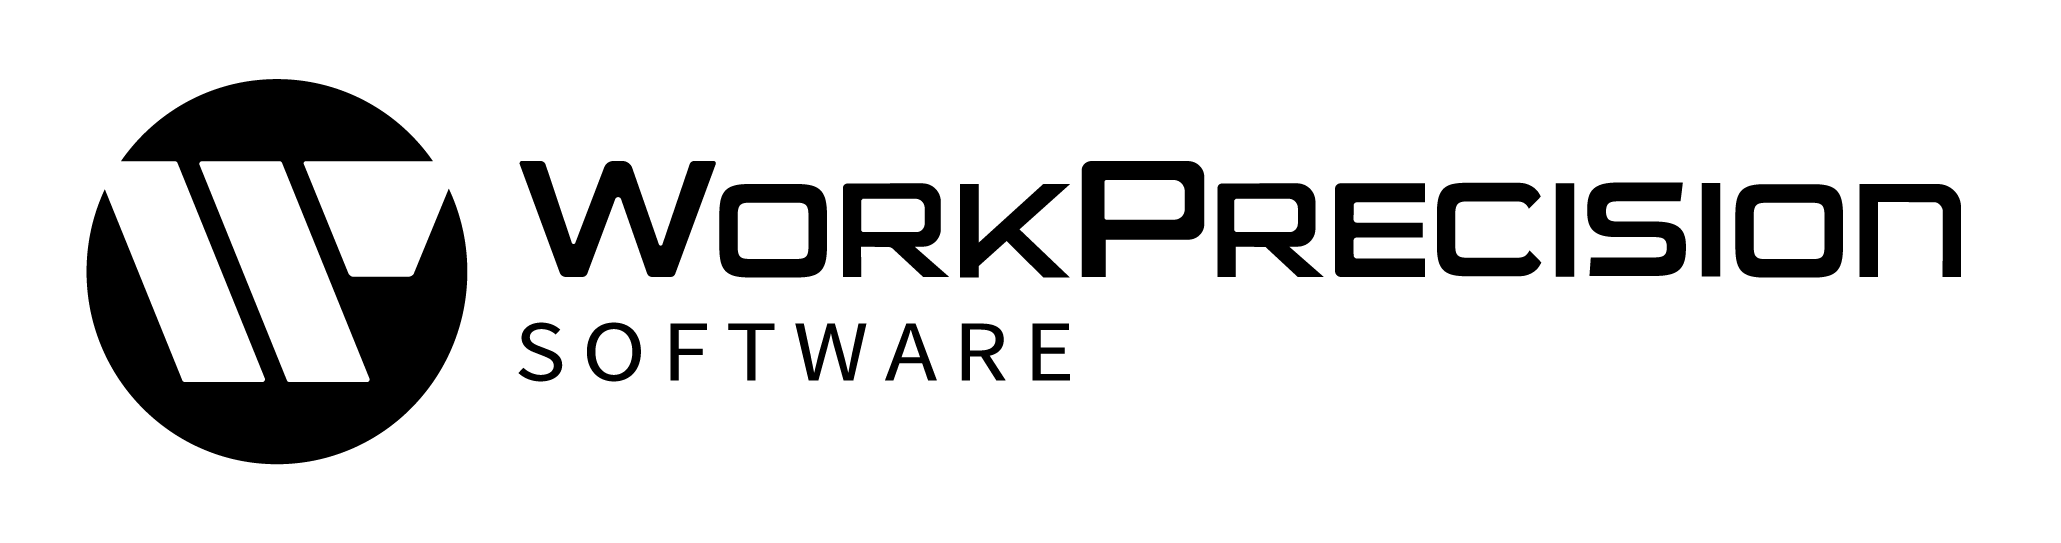 WorkPrecision